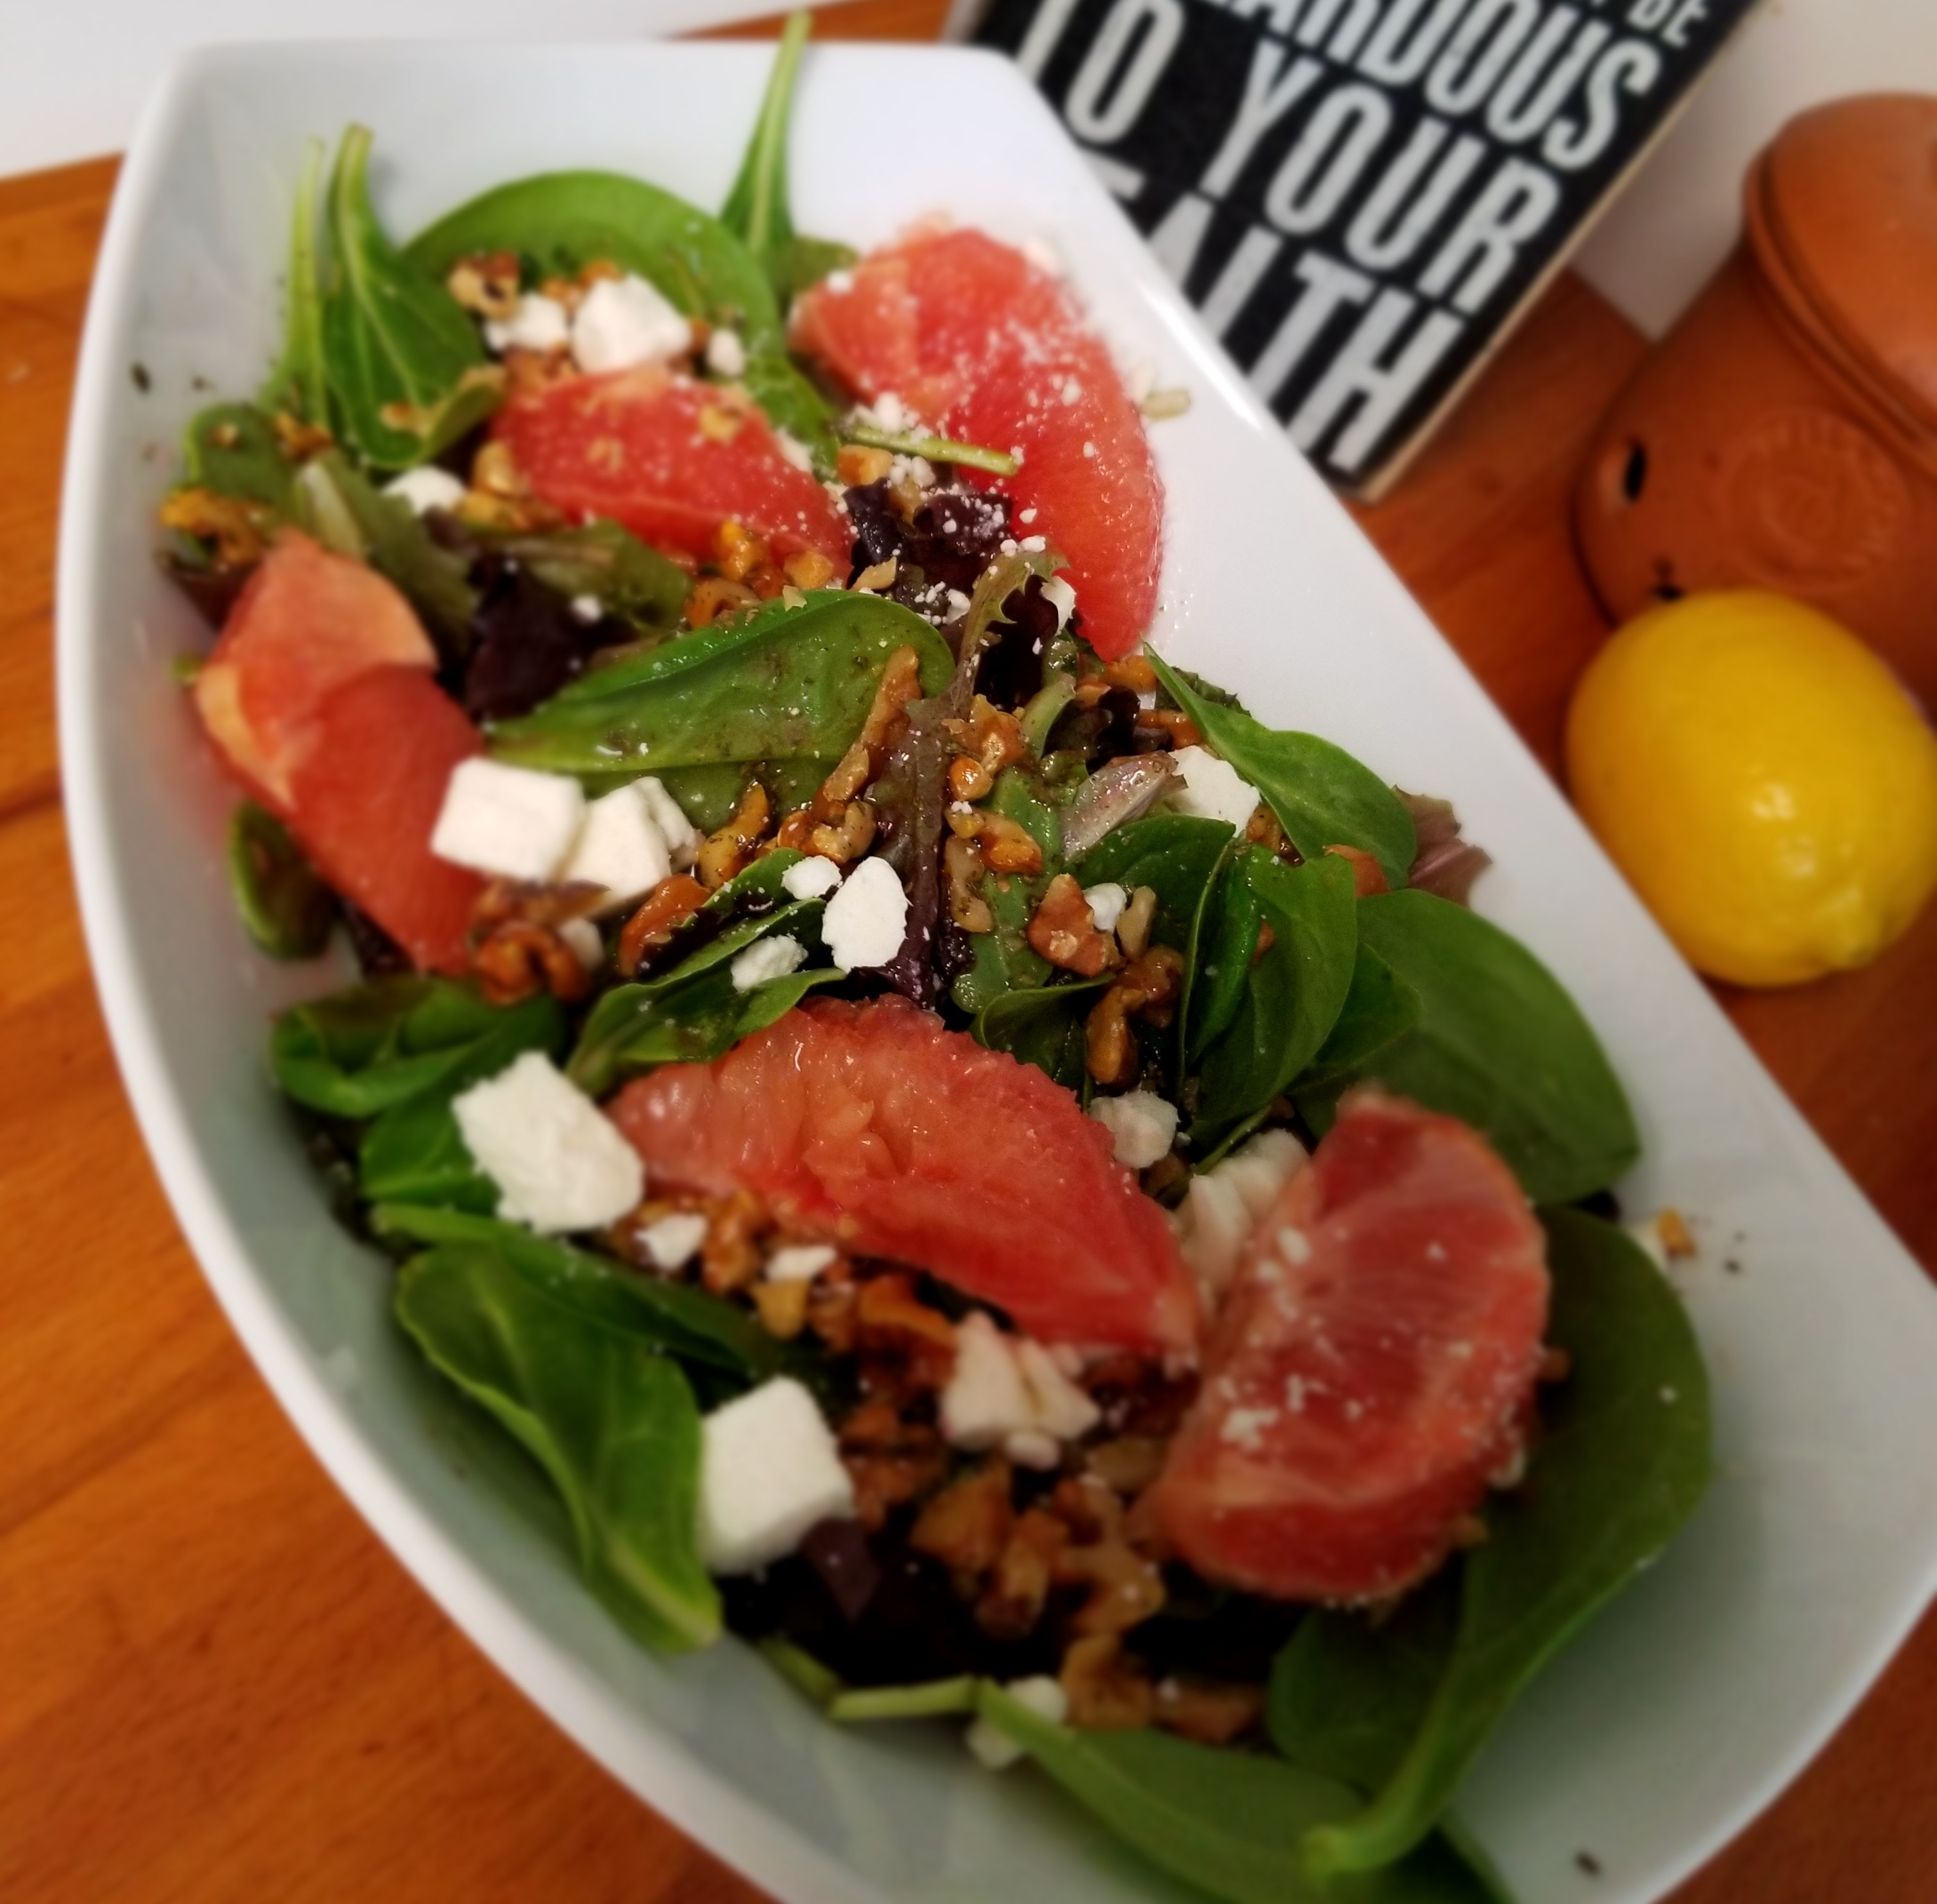 Citrus Spinach Salad with Feta and Cranberry Dressing